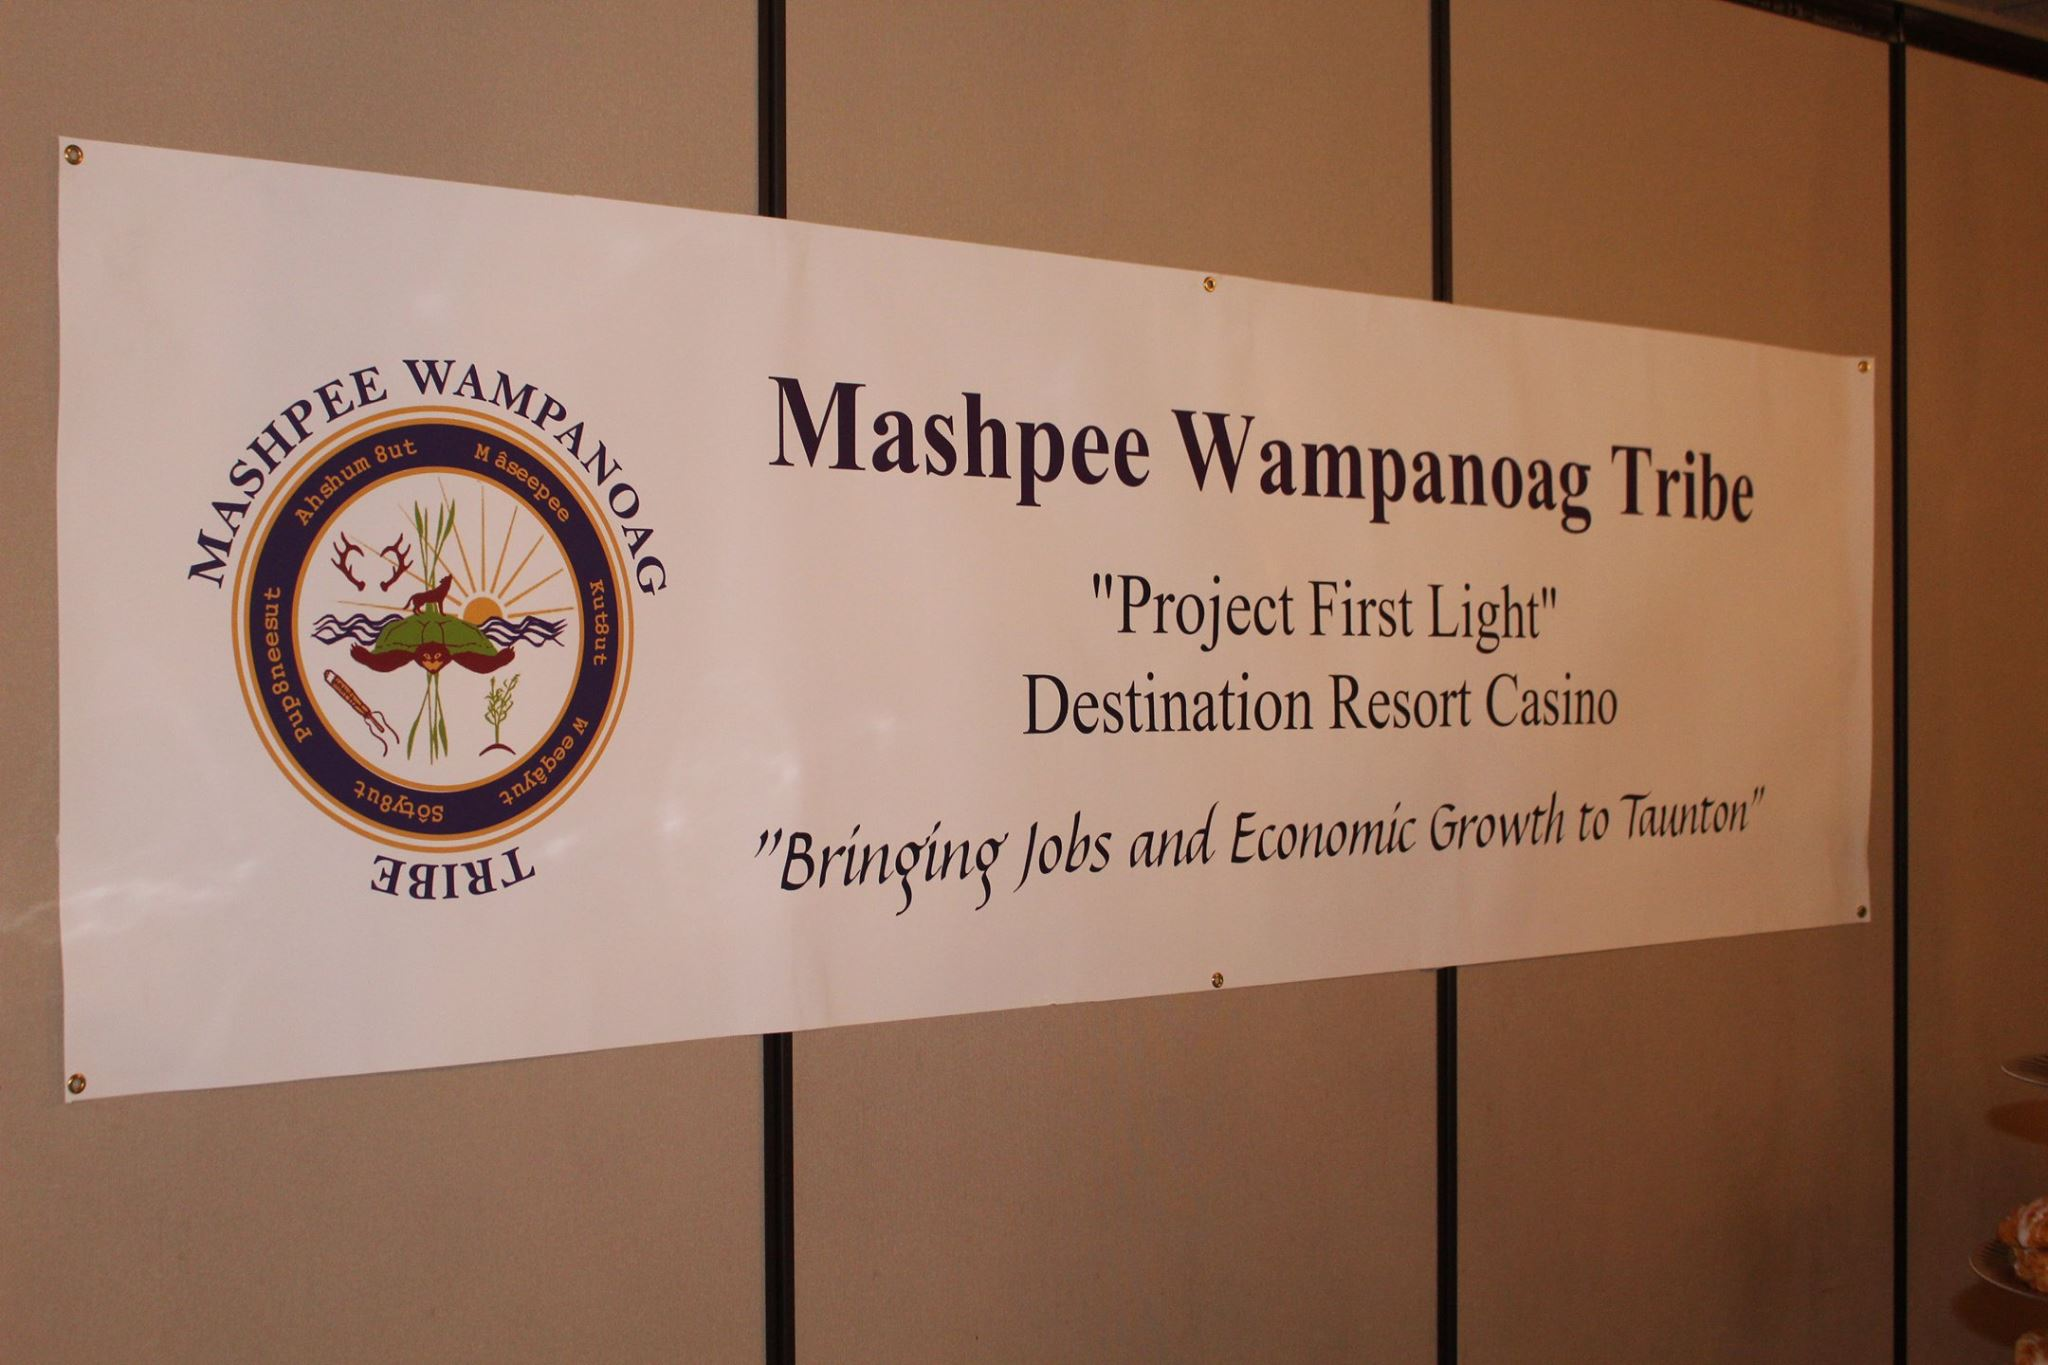 Mashpee Wampanoag Tribe gaming site officially put in trust